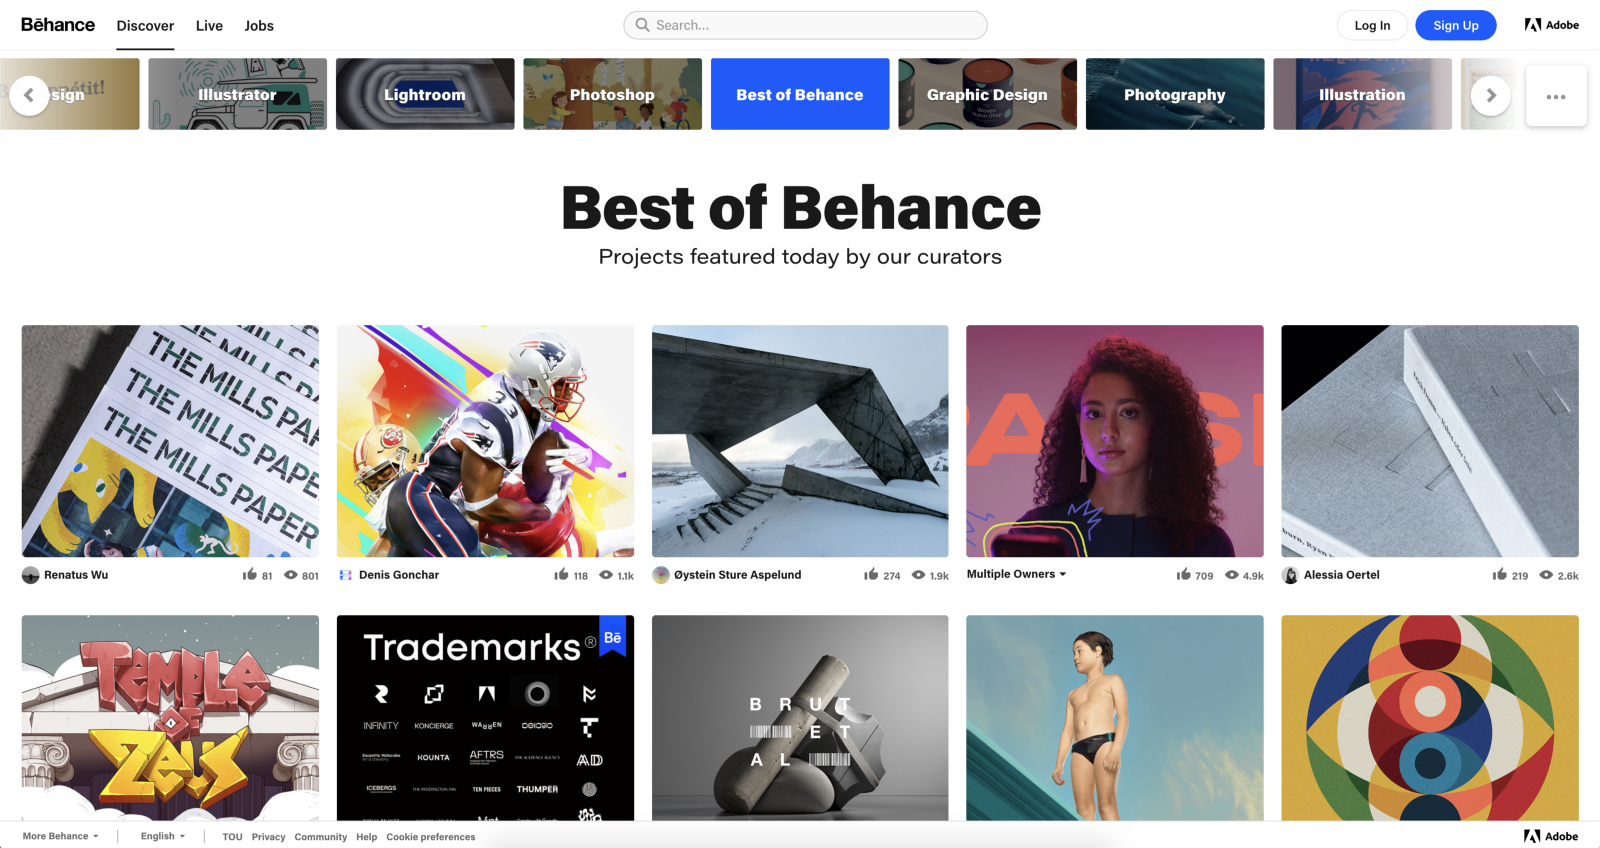 Best of Behance, projects featured today by our curators